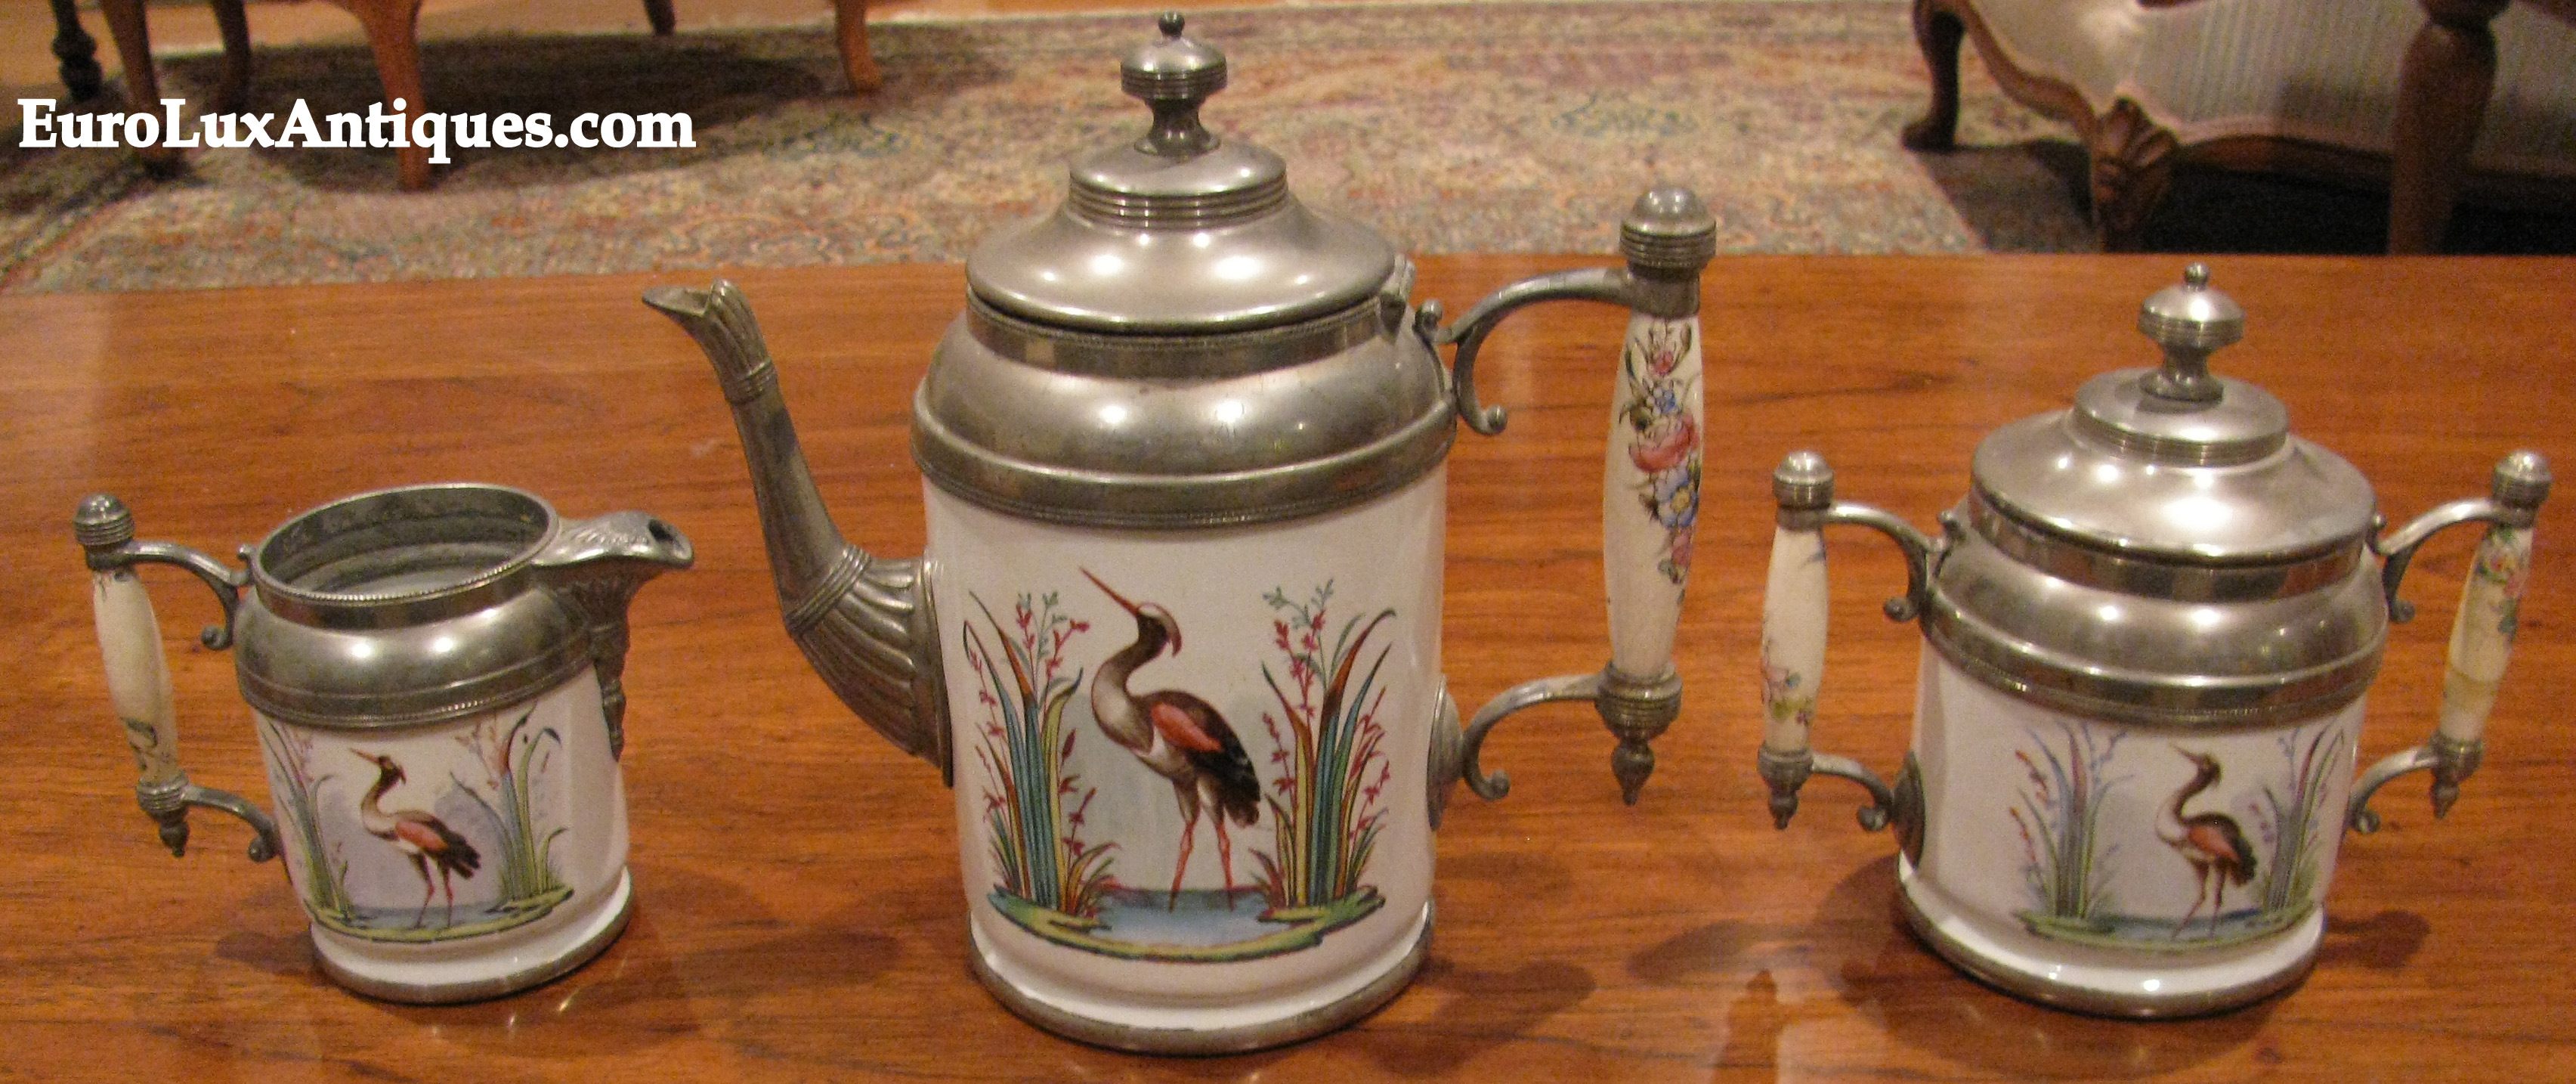 German enamelware coffee set